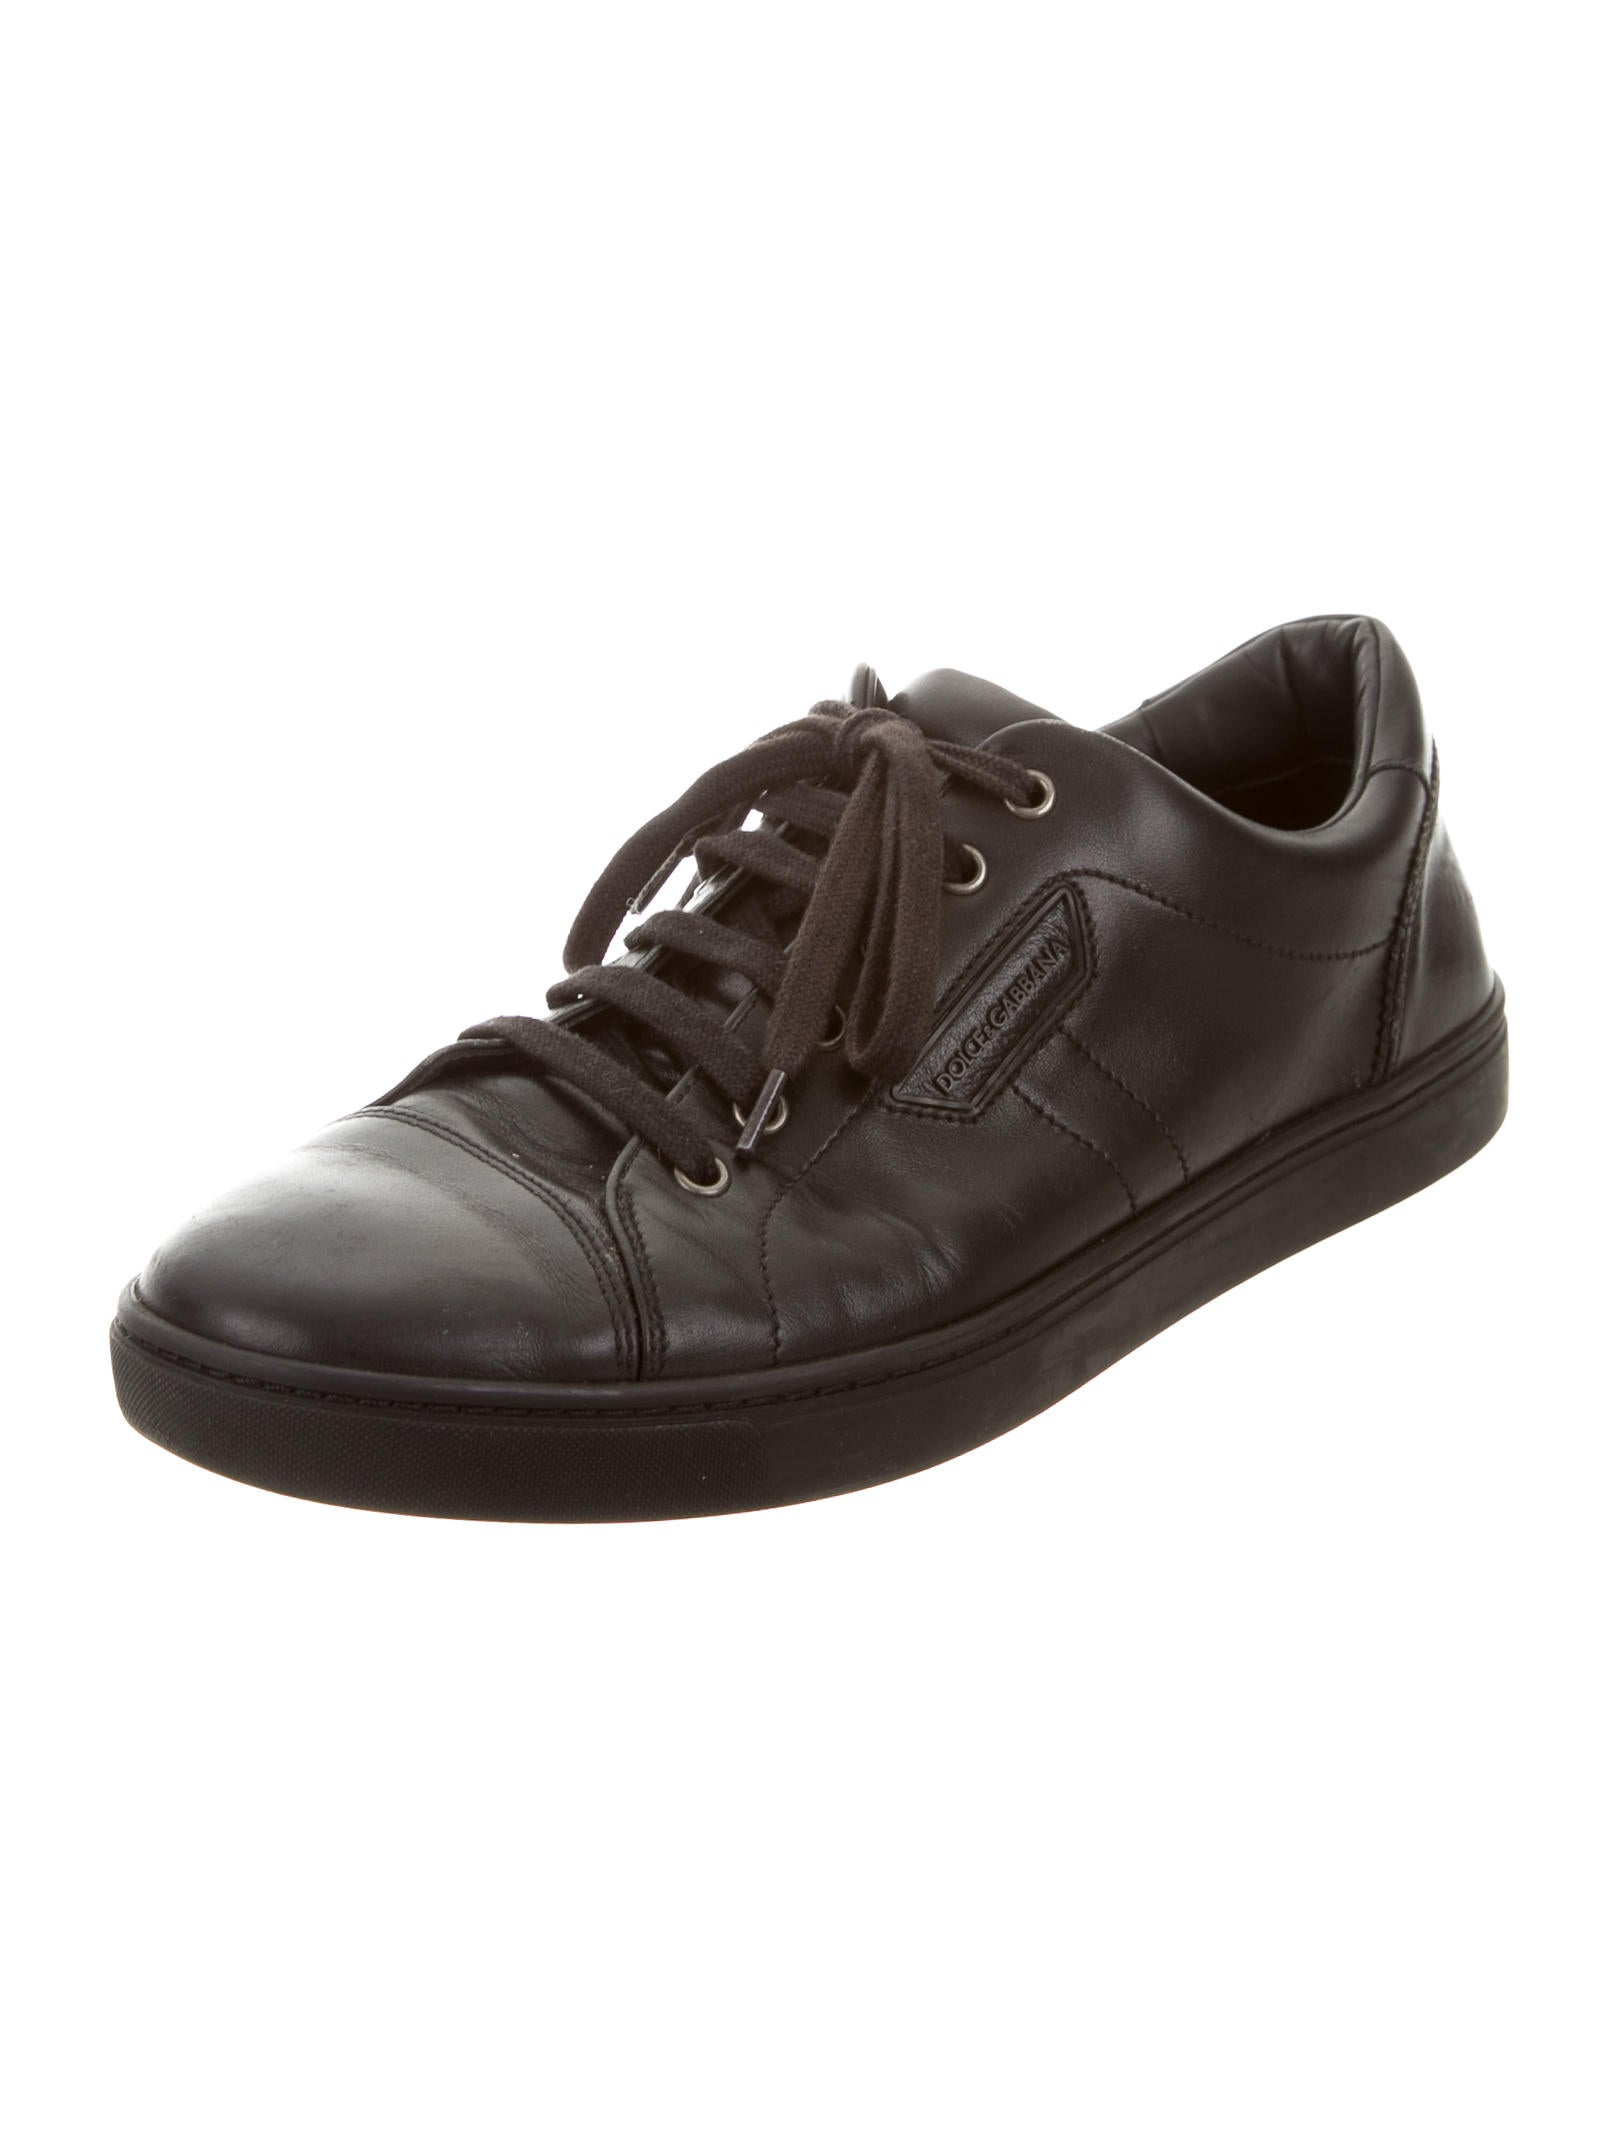 dolce gabbana leather low top sneakers shoes dag81572 the realreal. Black Bedroom Furniture Sets. Home Design Ideas